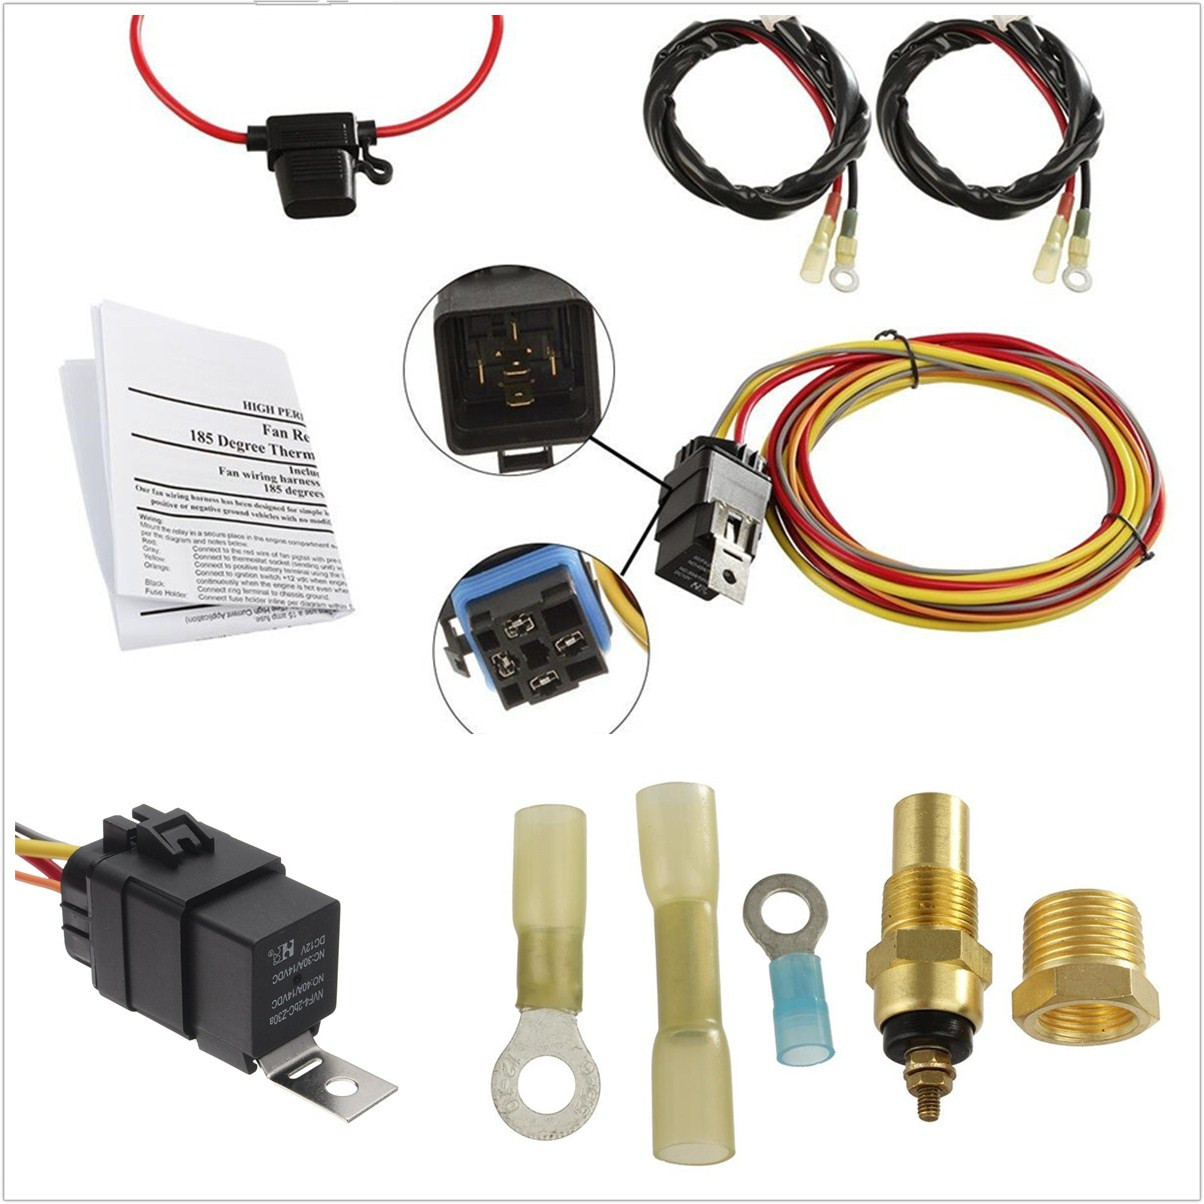 hight resolution of details about universal 12v car offroad dual electric cooling fan wiring harness kit 40a relay